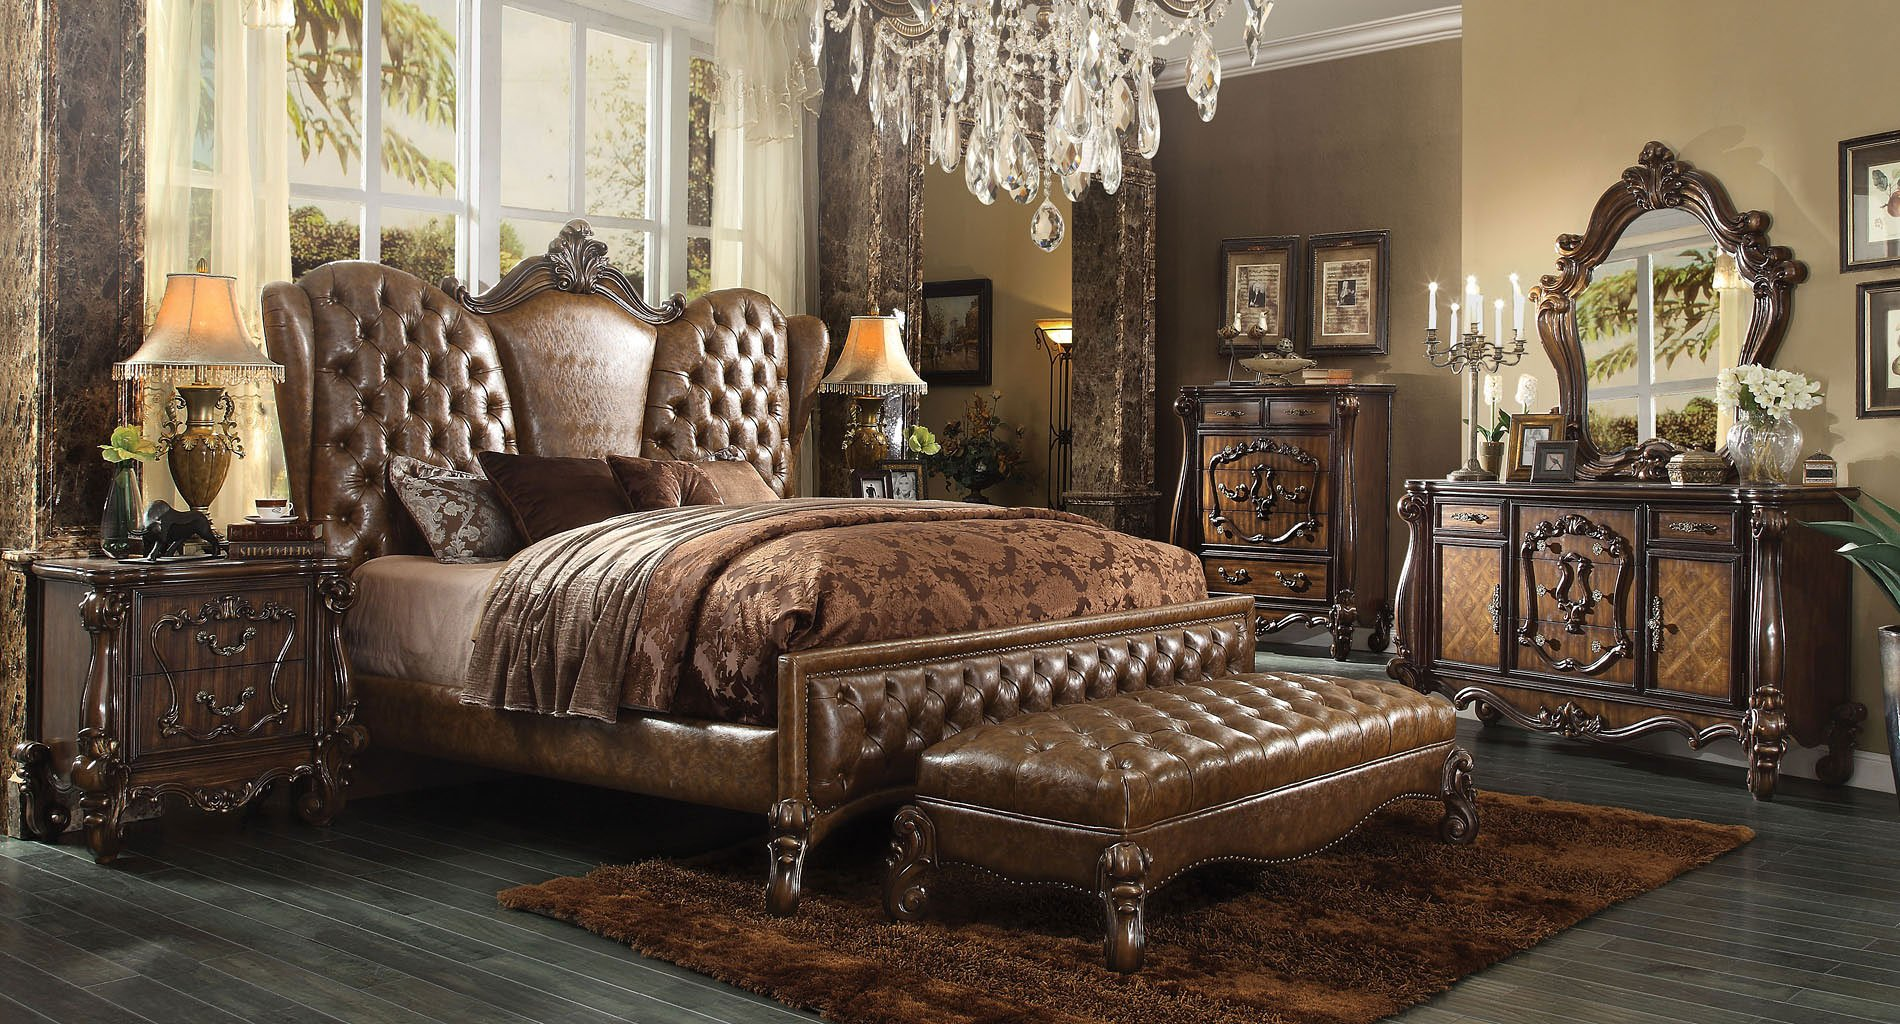 versailles upholstered bedroom set w light brown bed by 12093 | 21100q br set uph brown 1